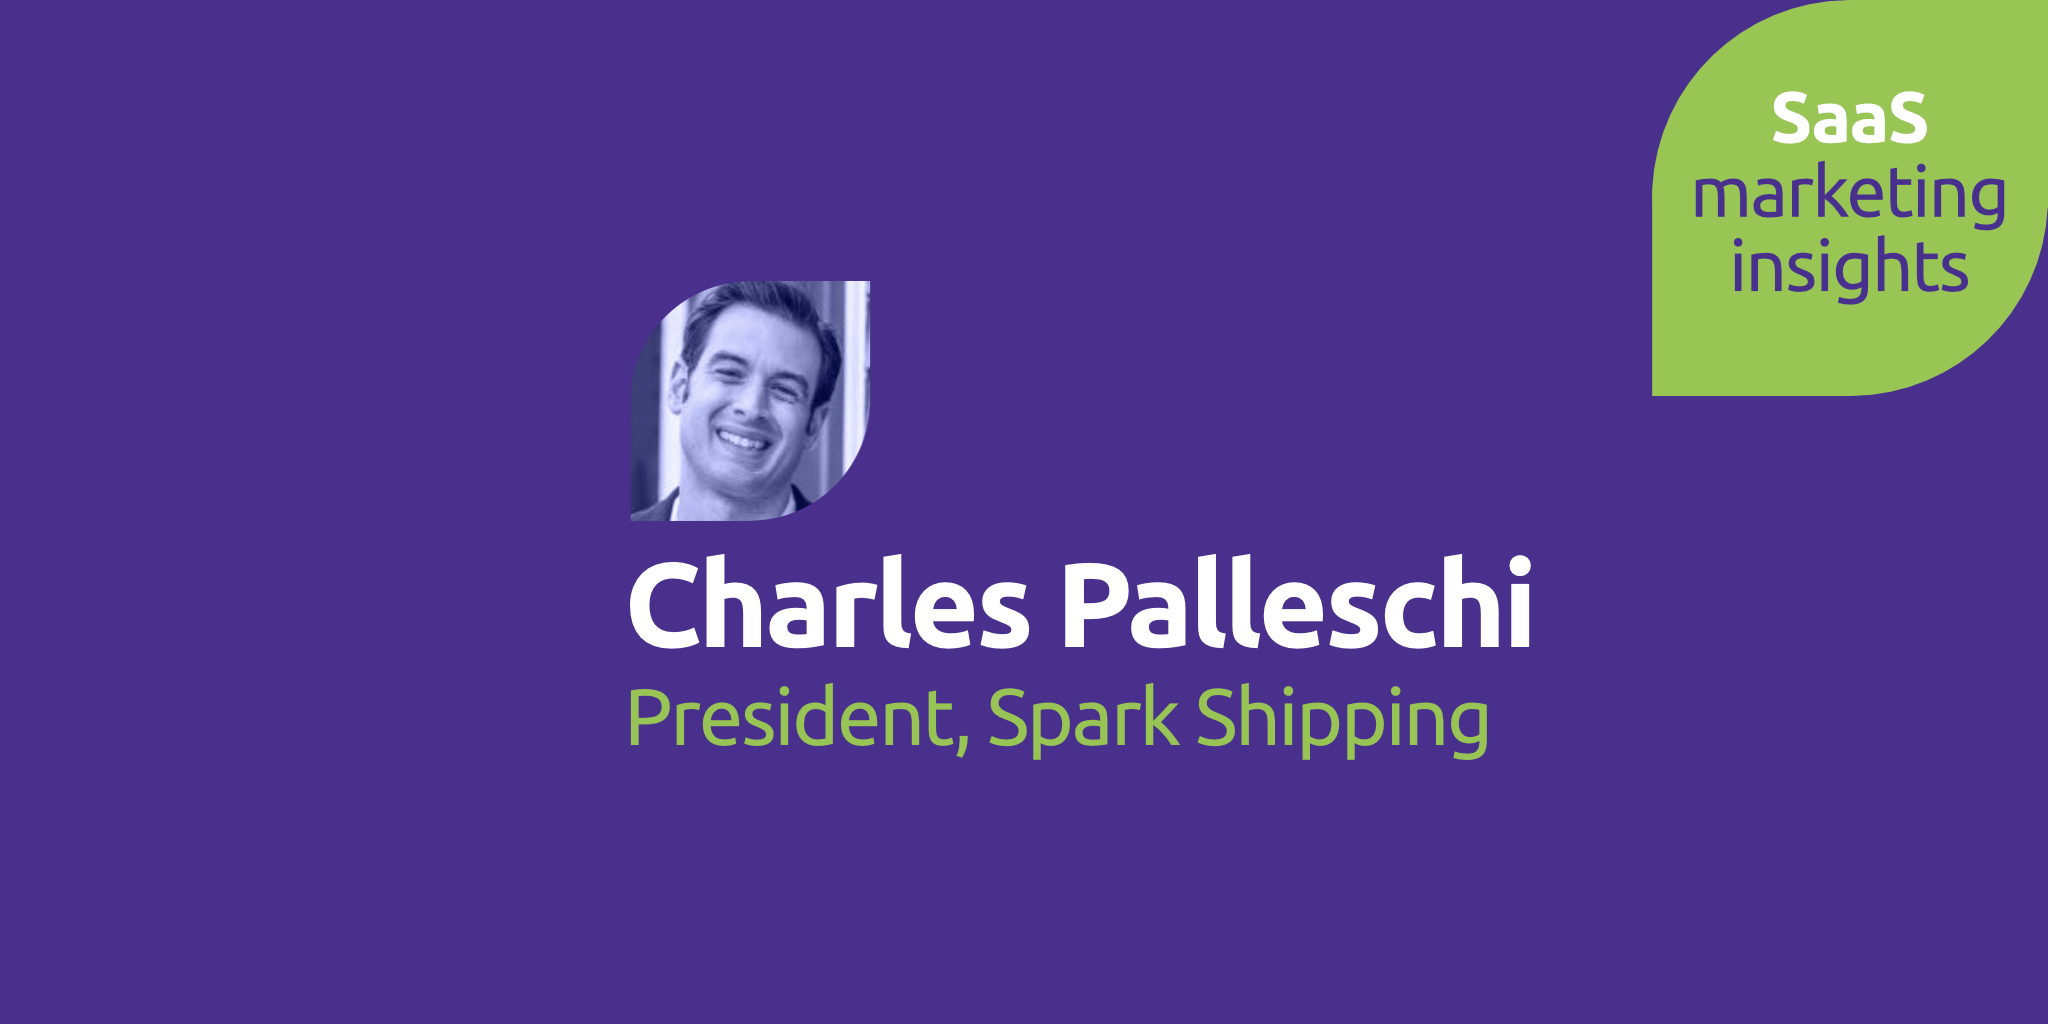 Charles Palleschi, Spark Shipping